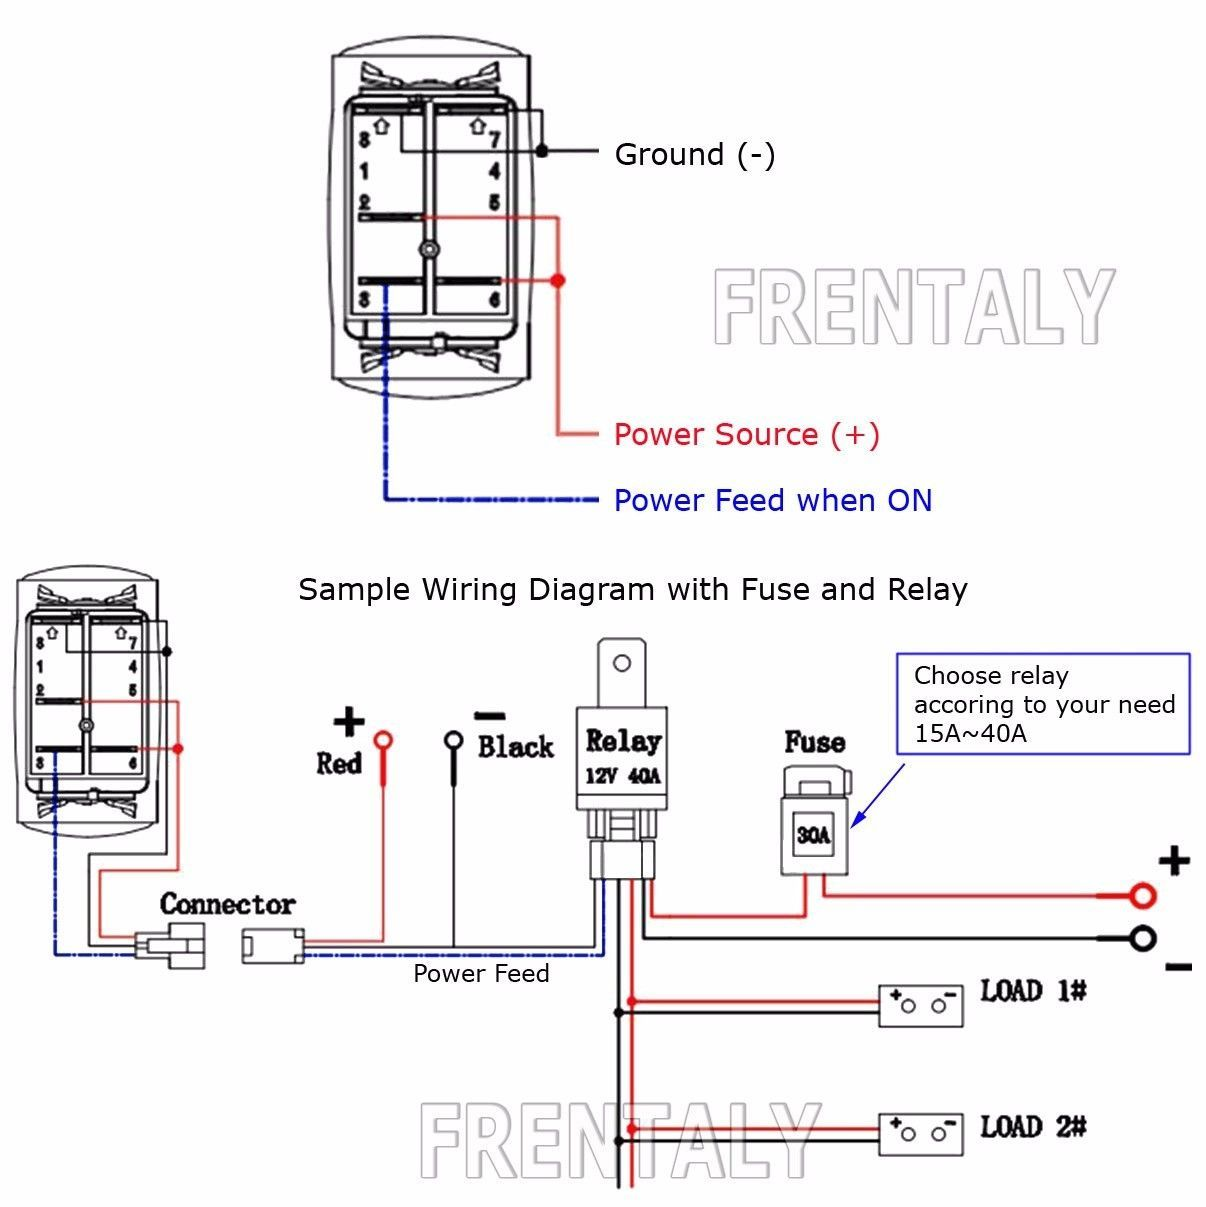 Usb Socket Diagram - Wiring Diagrams Folder on